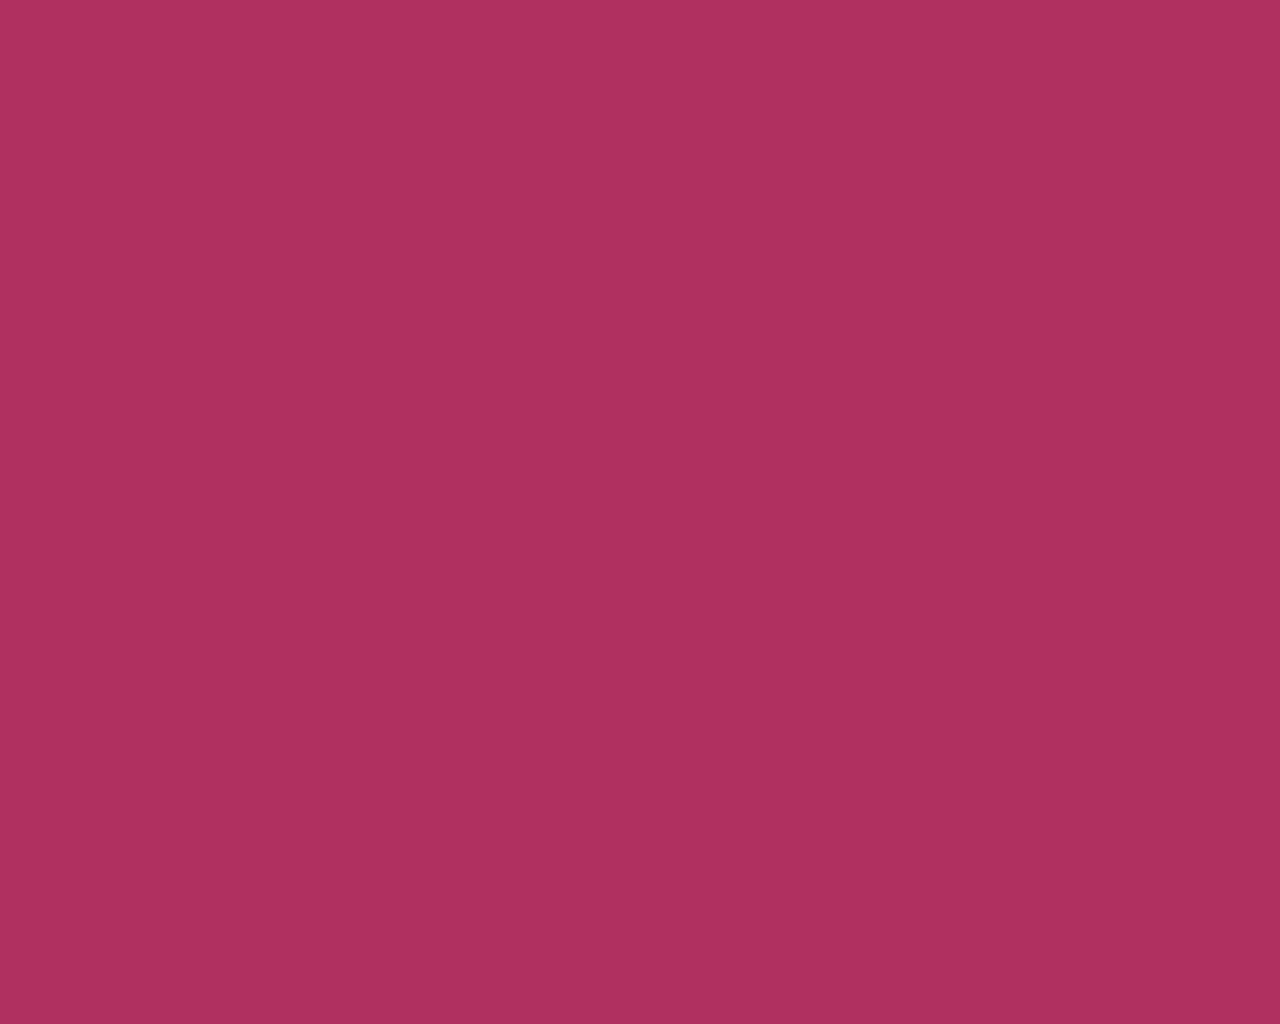 1280x1024 Rich Maroon Solid Color Background